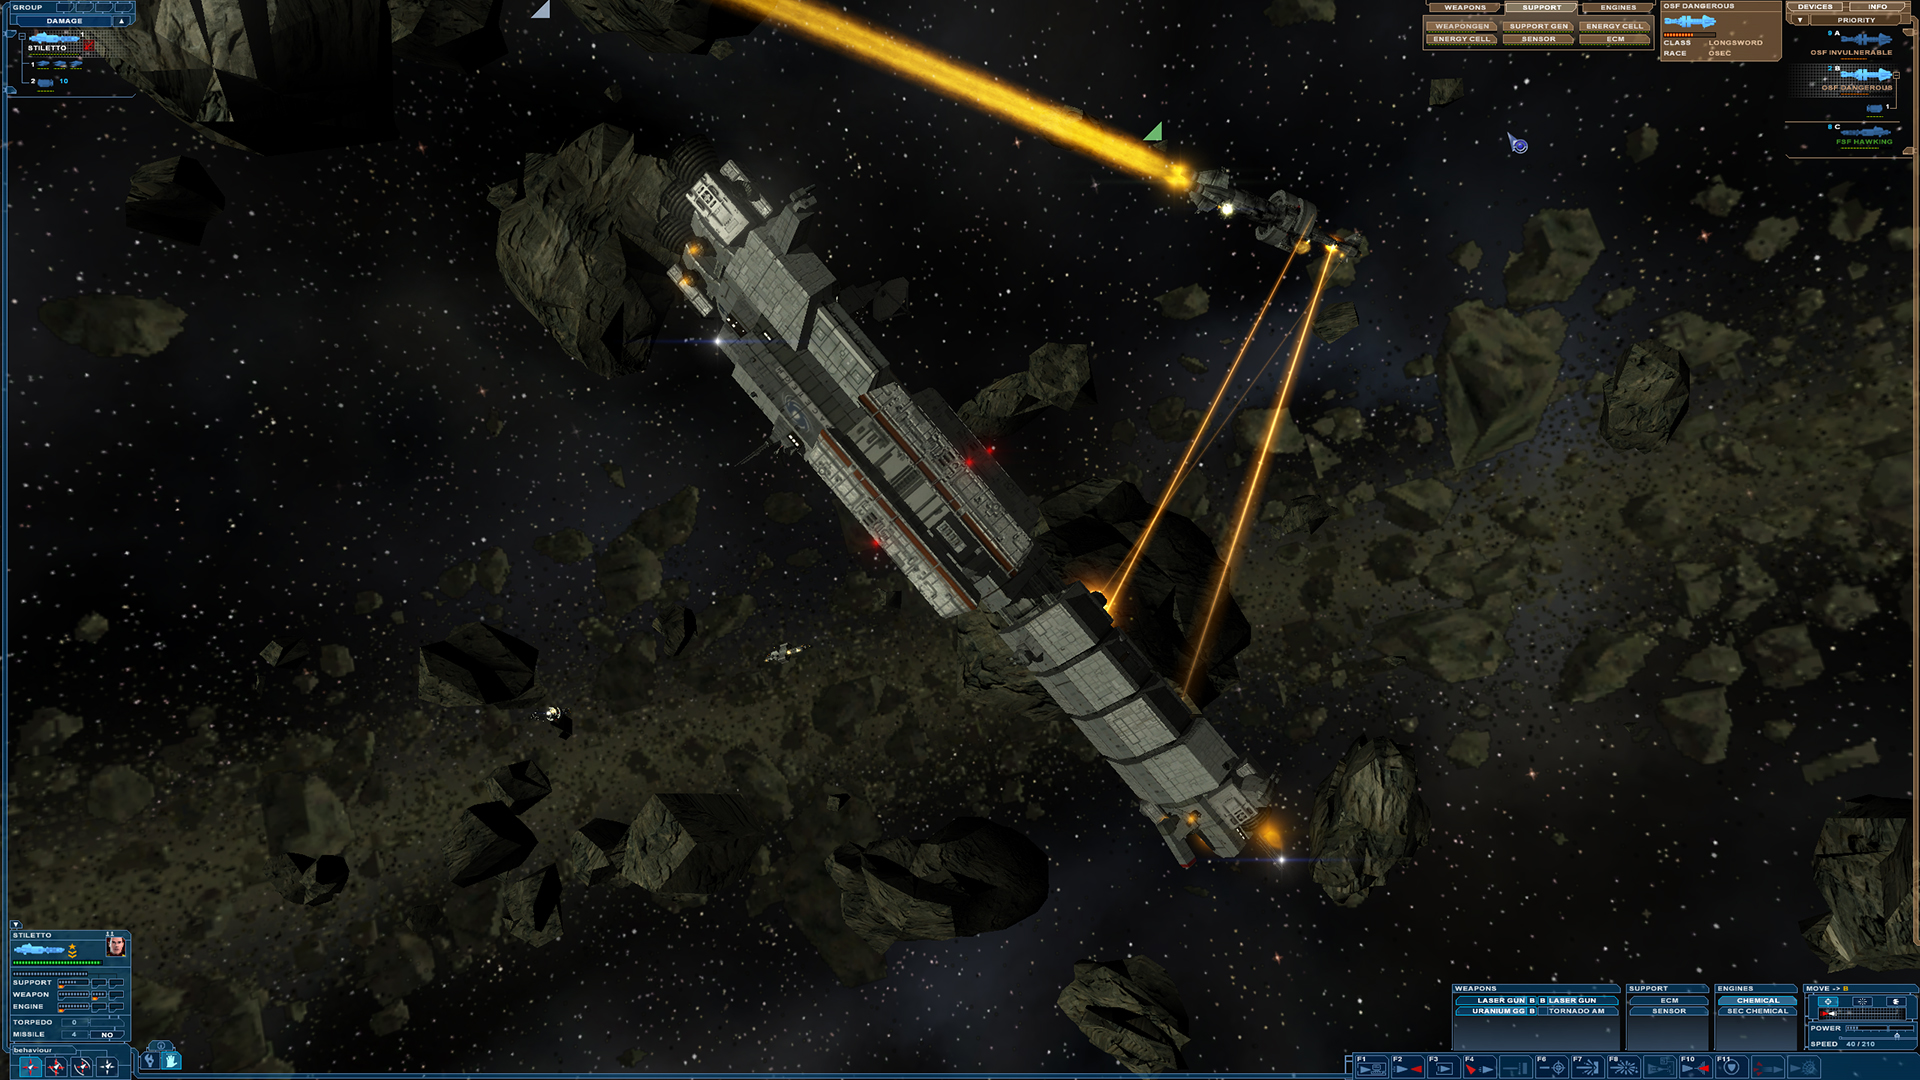 A thin, long capital spaceship exchanges laser fire with a smaller cruiser type ship in an asteroid field